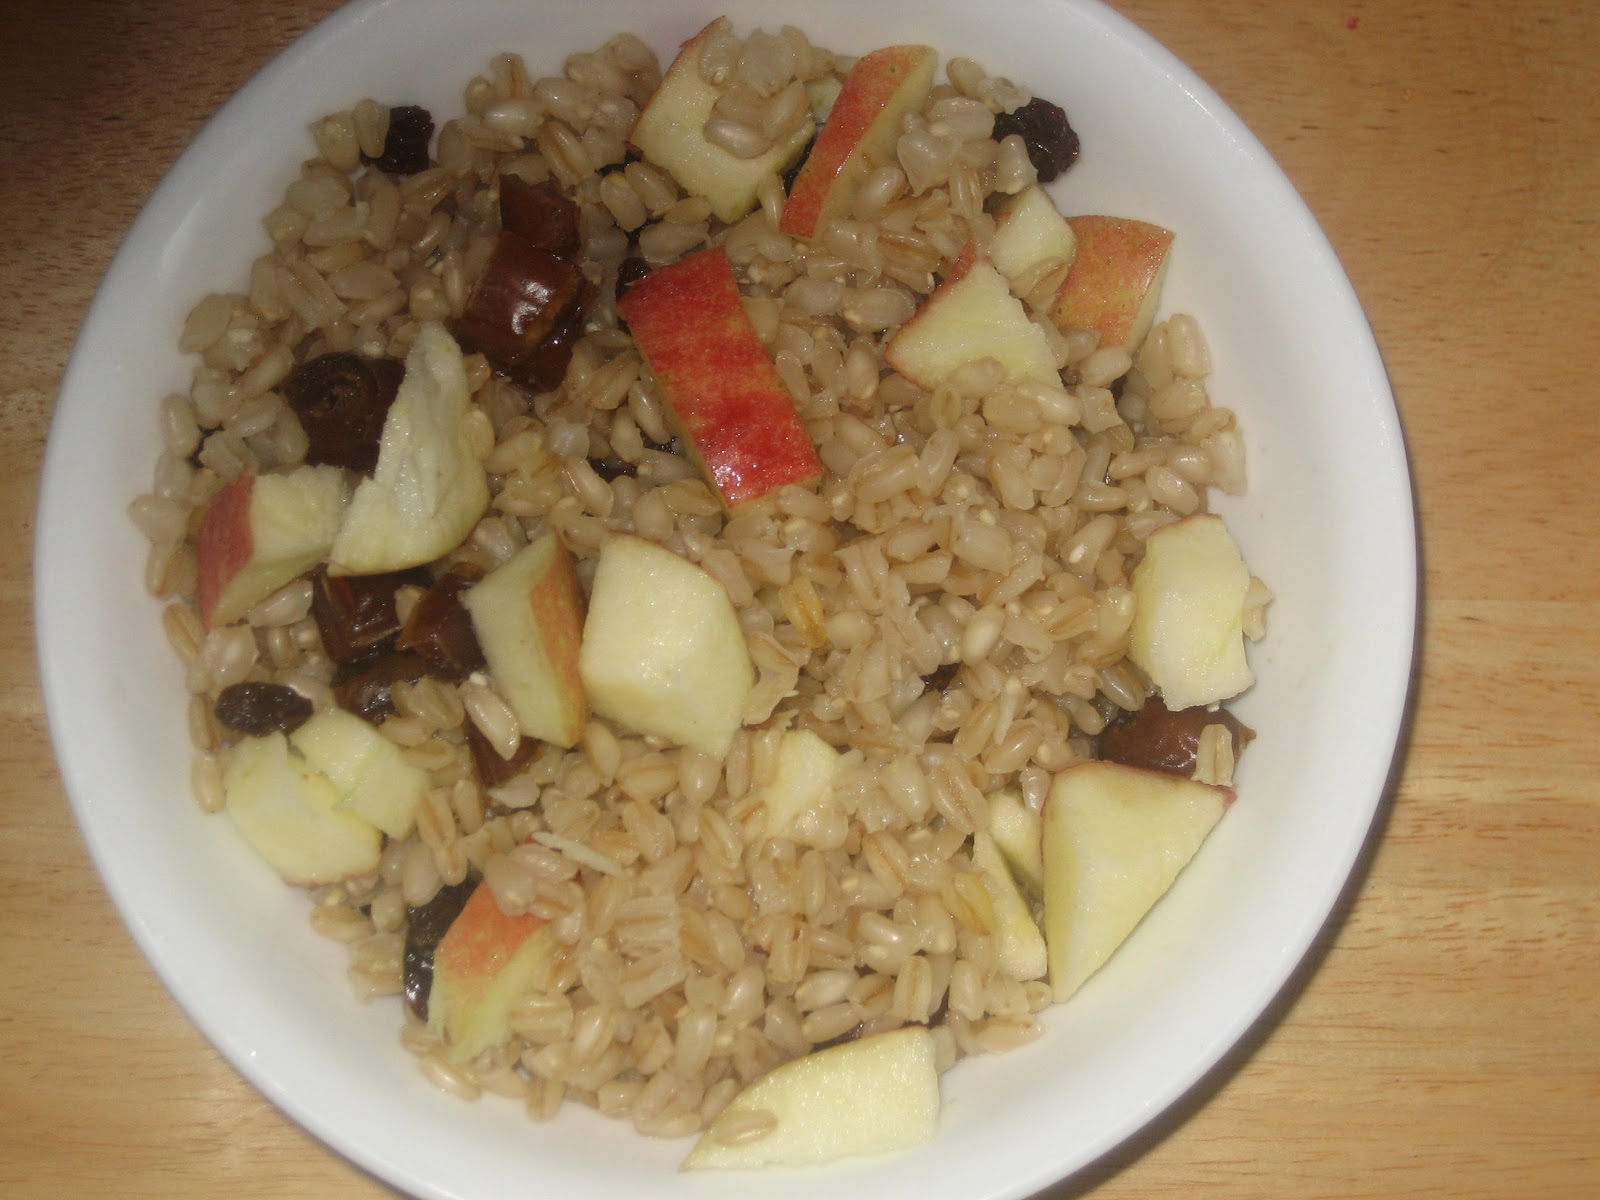 Wheat berry Breakfast Bowl with Apples, Dates & Raisins.